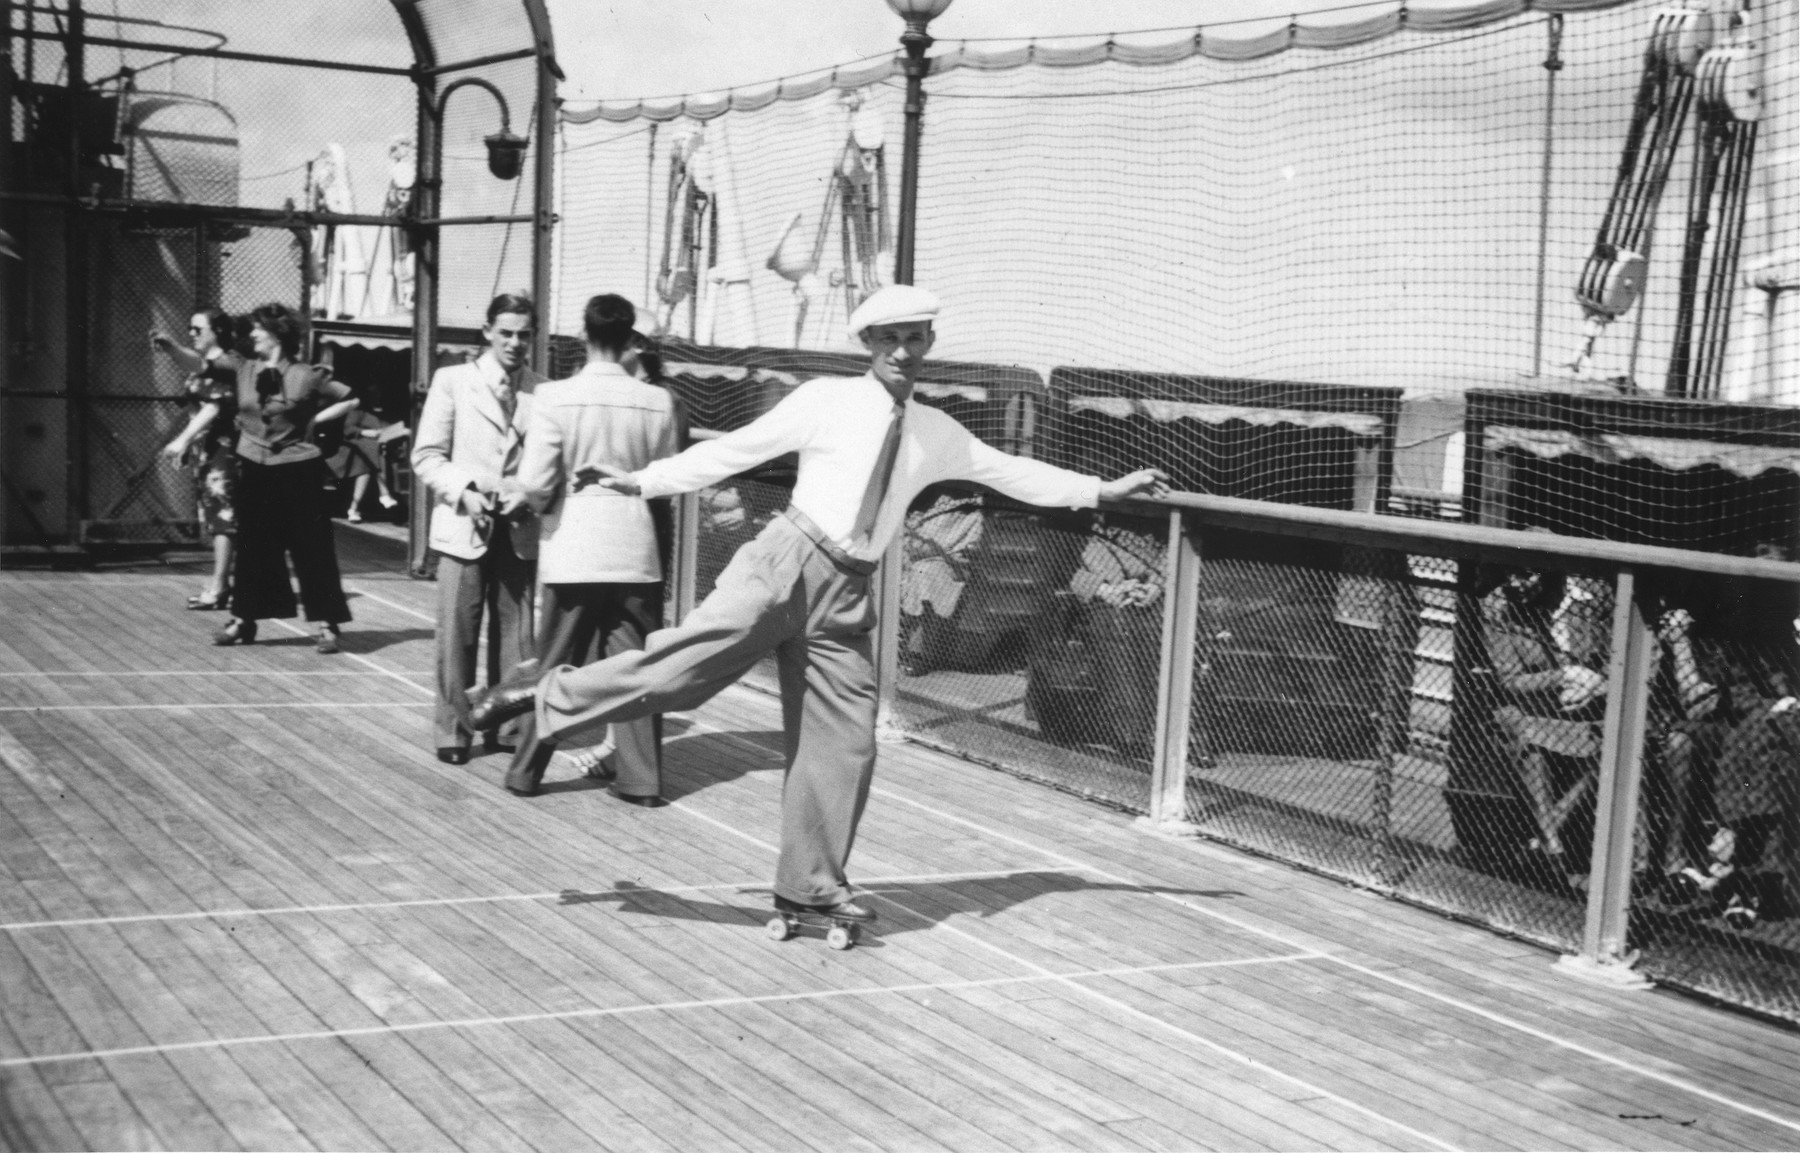 Jewish refugee Georg Lenneberg roller skates on the deck of the MS St. Louis.